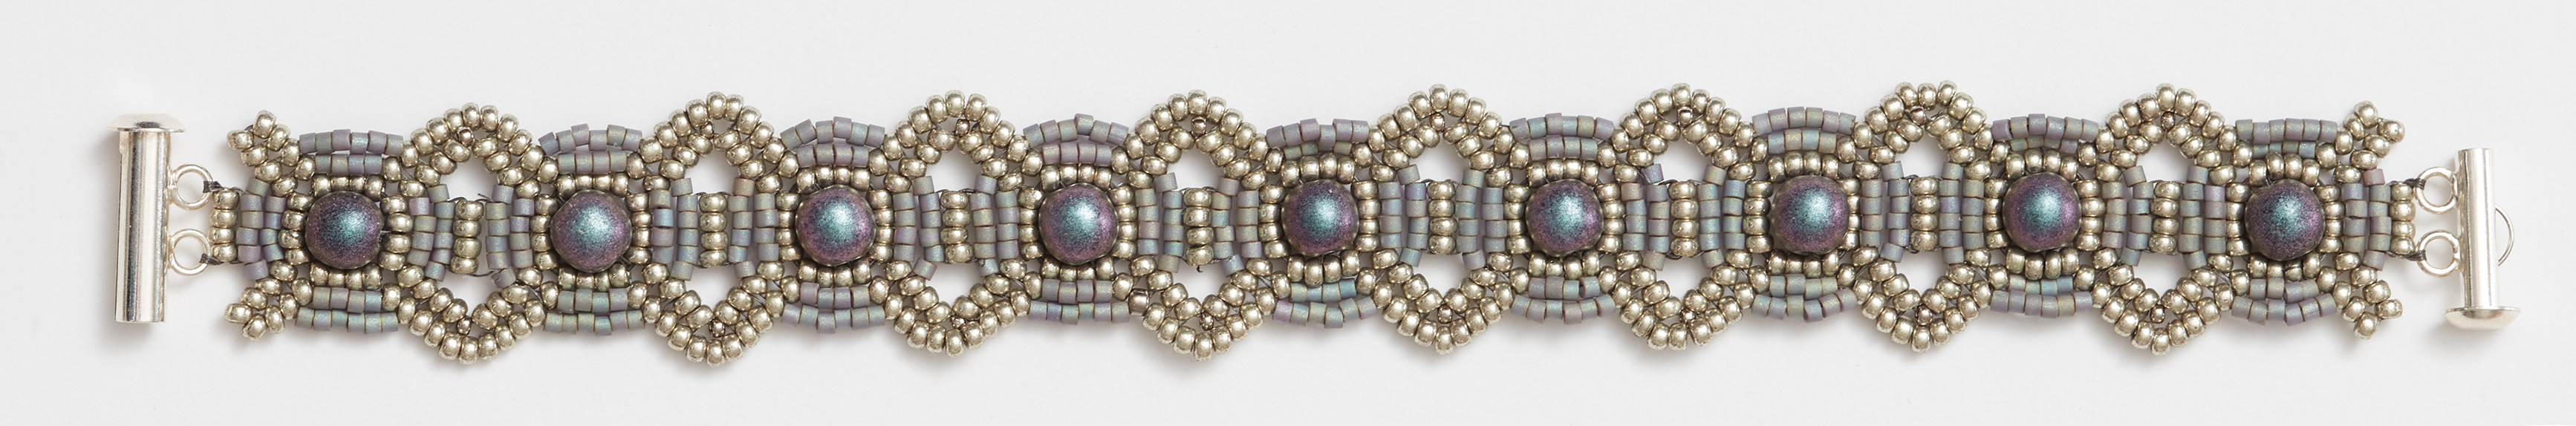 How to Make Celestial-Inspired Beaded Bracelet